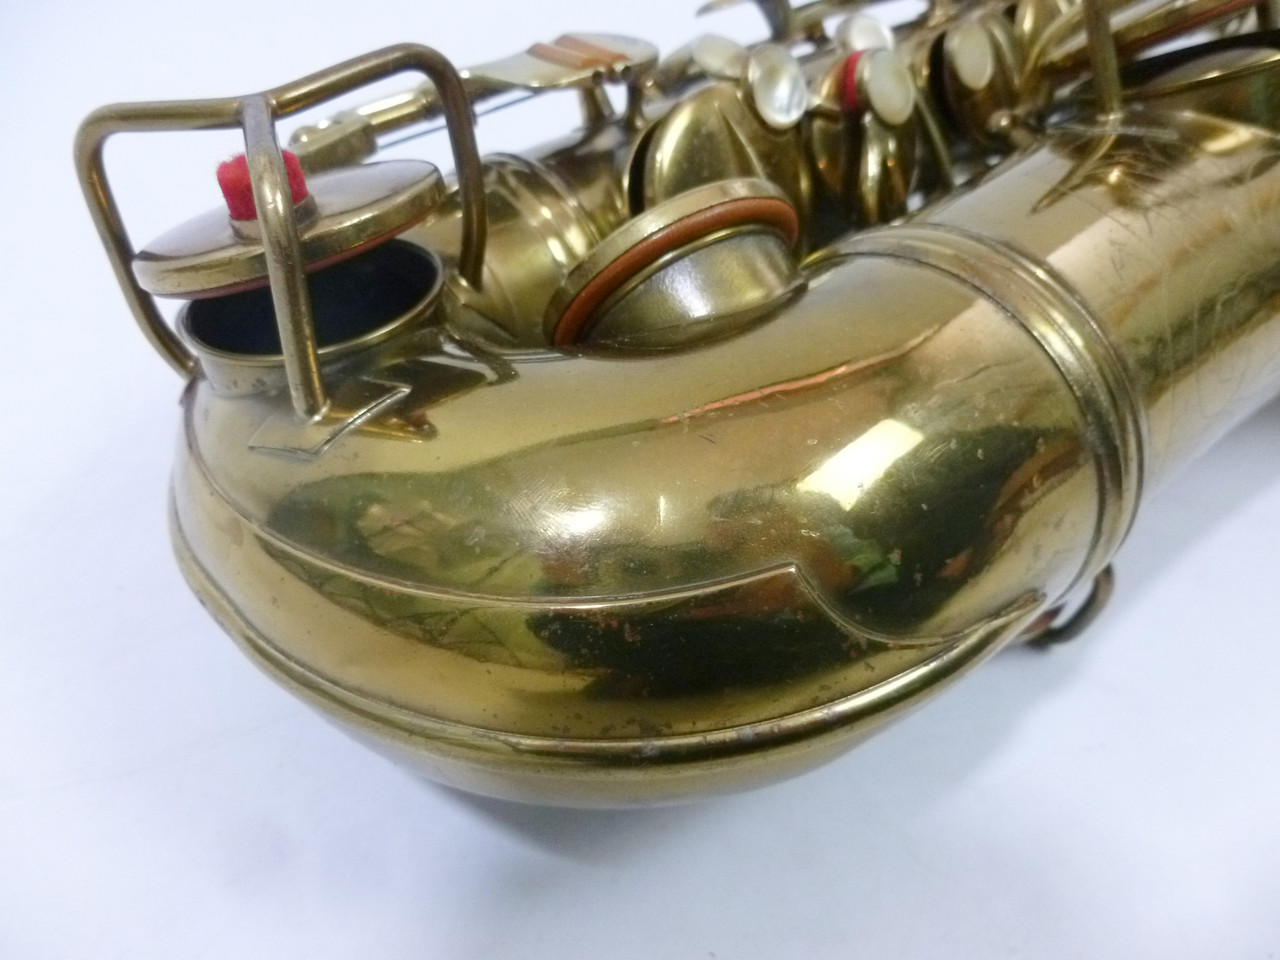 CONN TRANSITIONAL ALTO SAX C.1929 - REFURBISHED 6